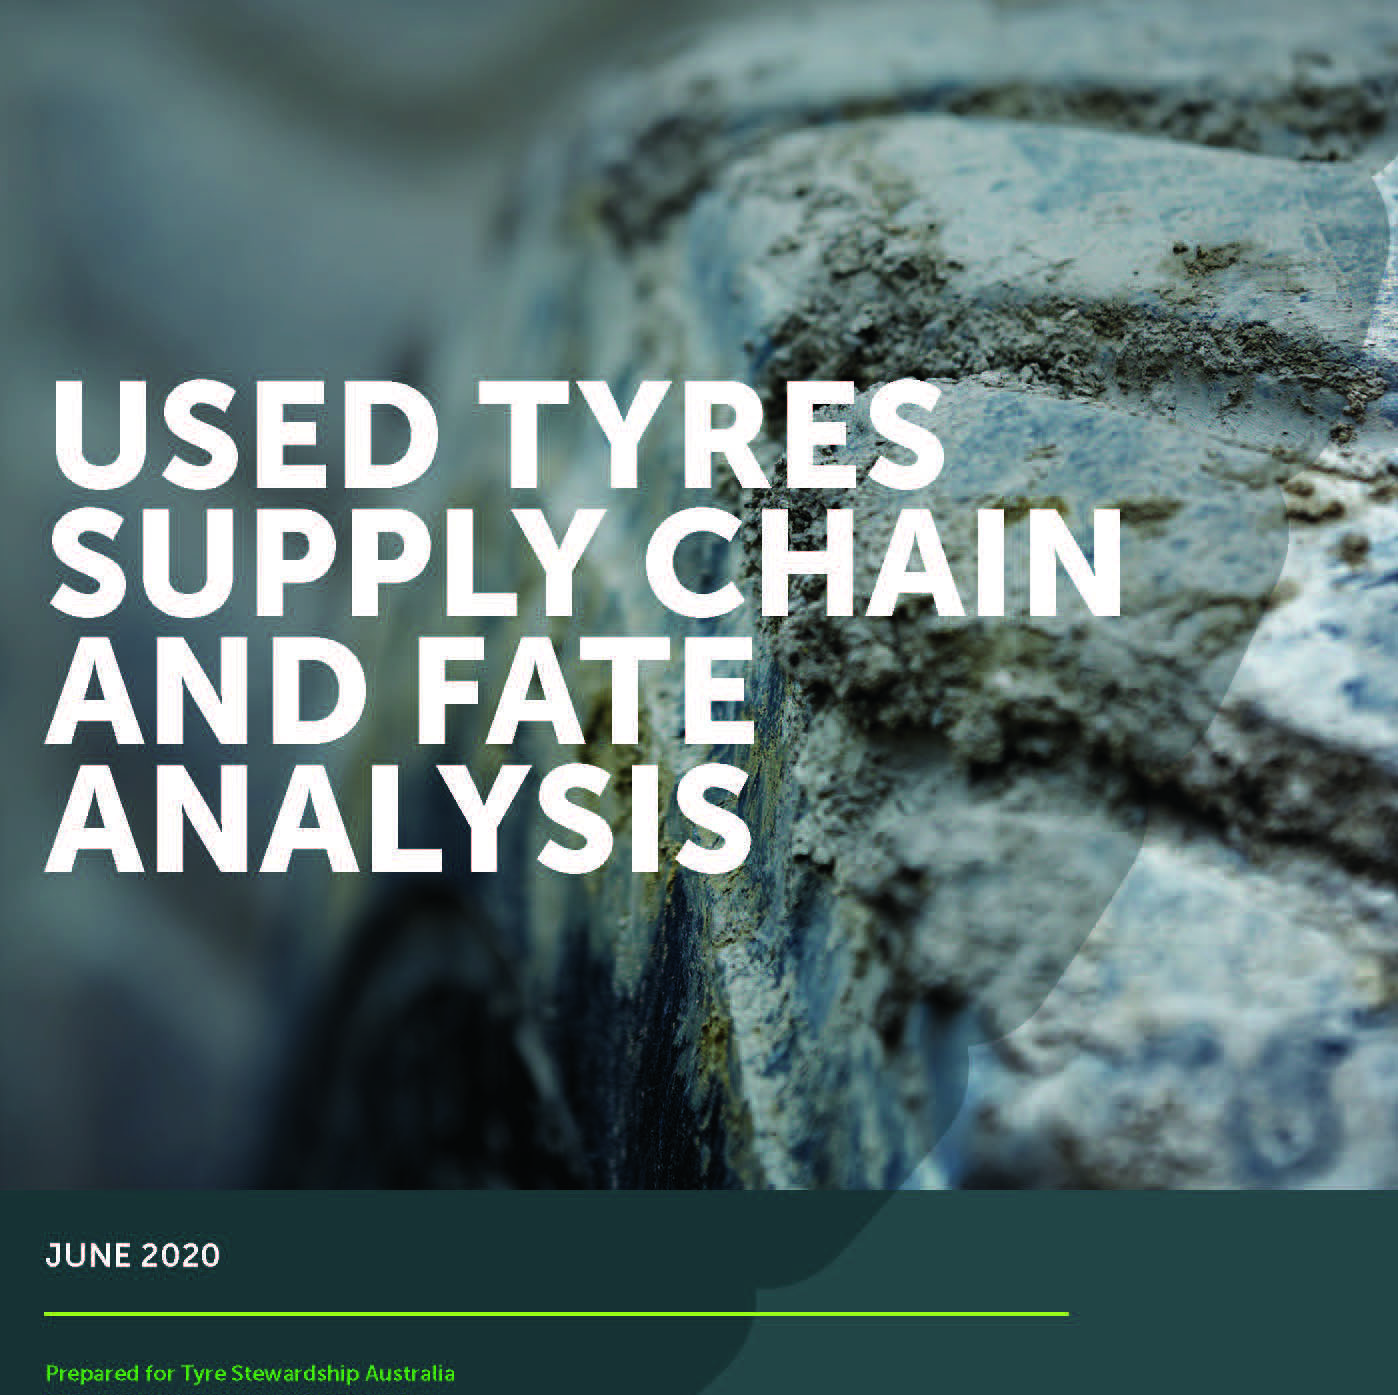 TSA releases highly anticipated 'Used Tyres Supply Chain and Fate Analysis' report